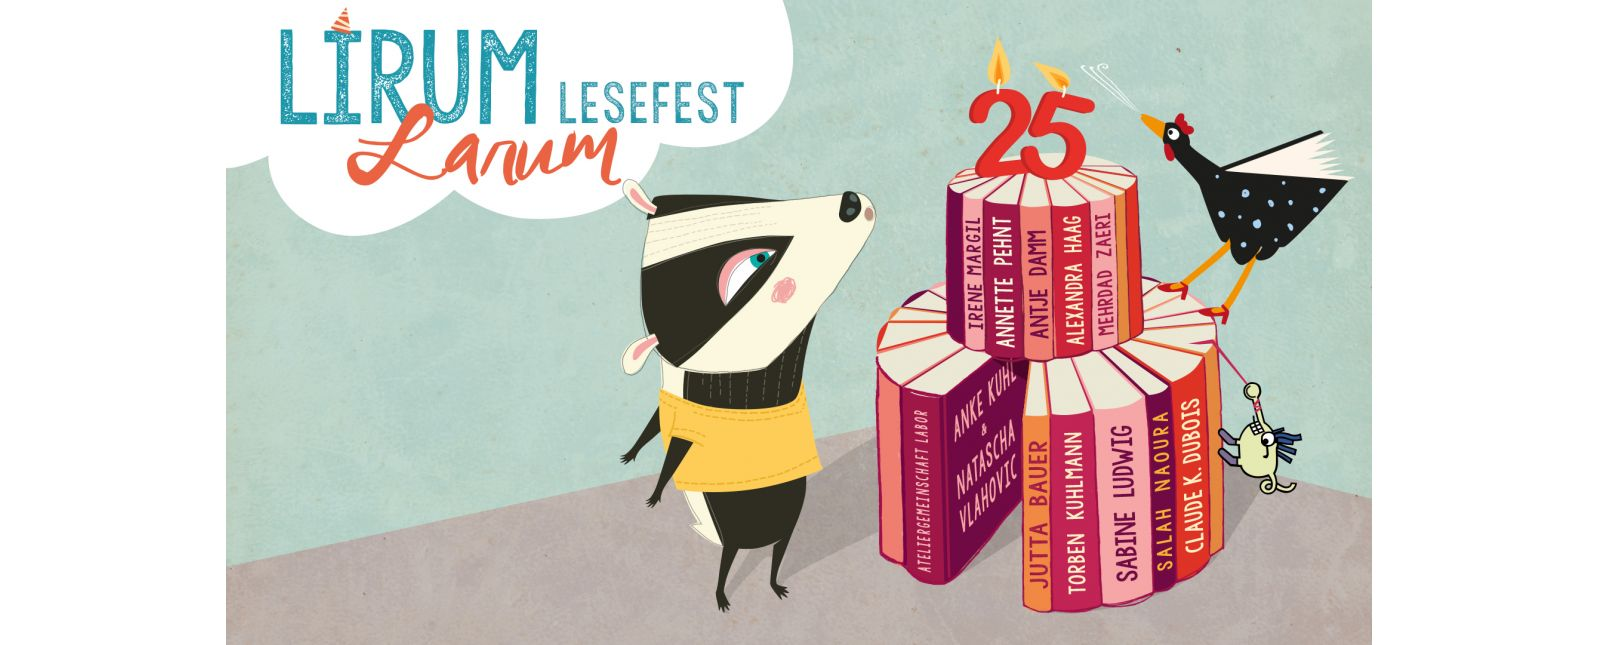 Lirum Larum Lesefest 2018 //  Illustration: Ana Castro Carrancho